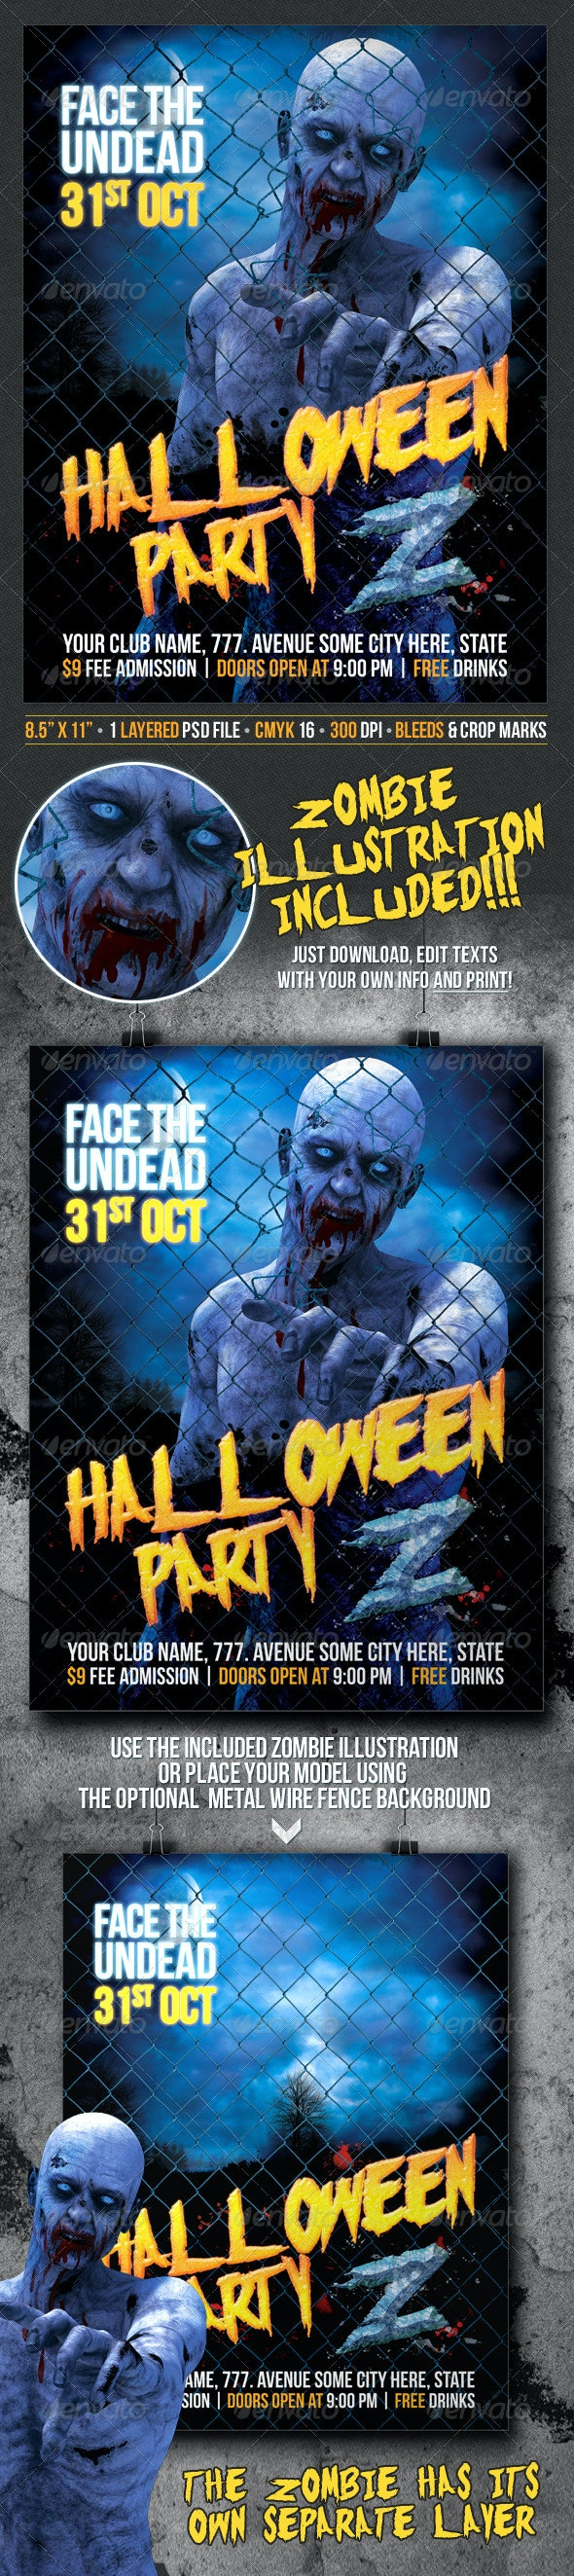 Halloween Party Z Zombie Themed Poster / Flyer - Clubs & Parties Events